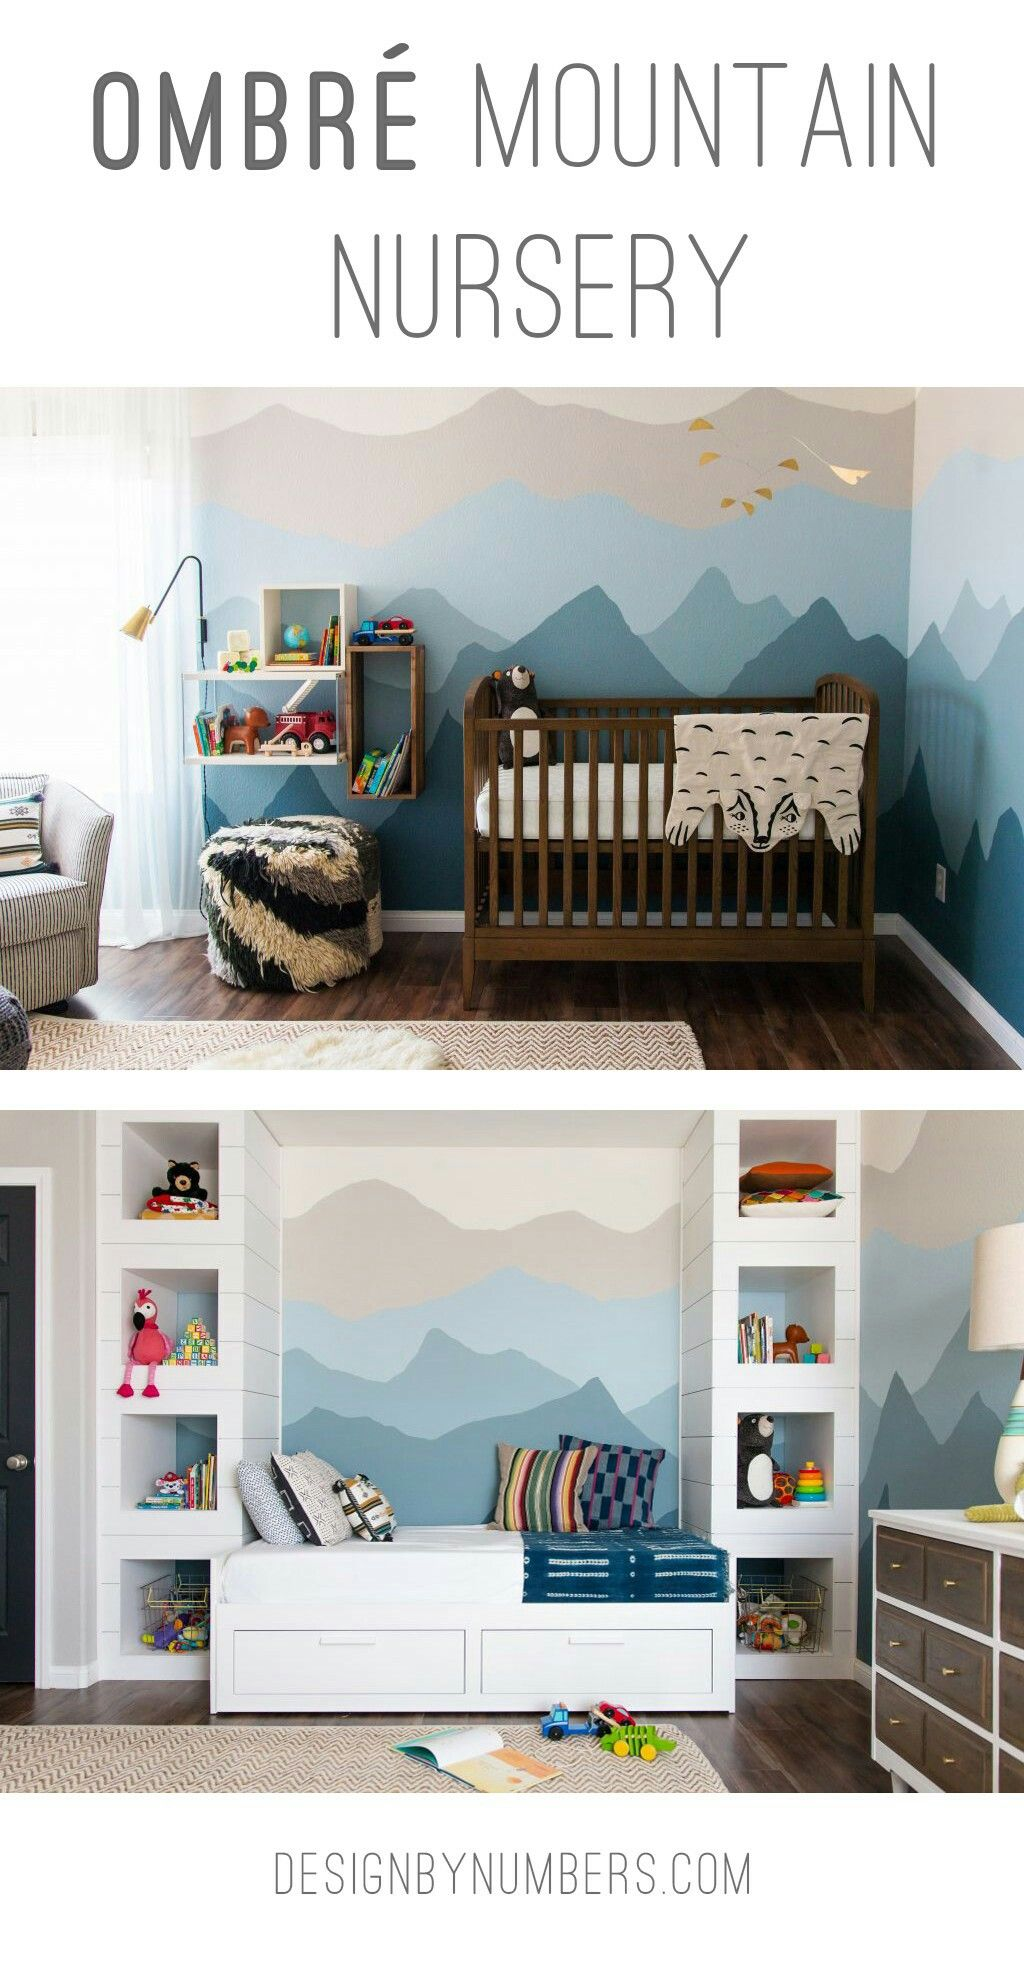 Ombré Mountain Nursery Baby Room Pinterest